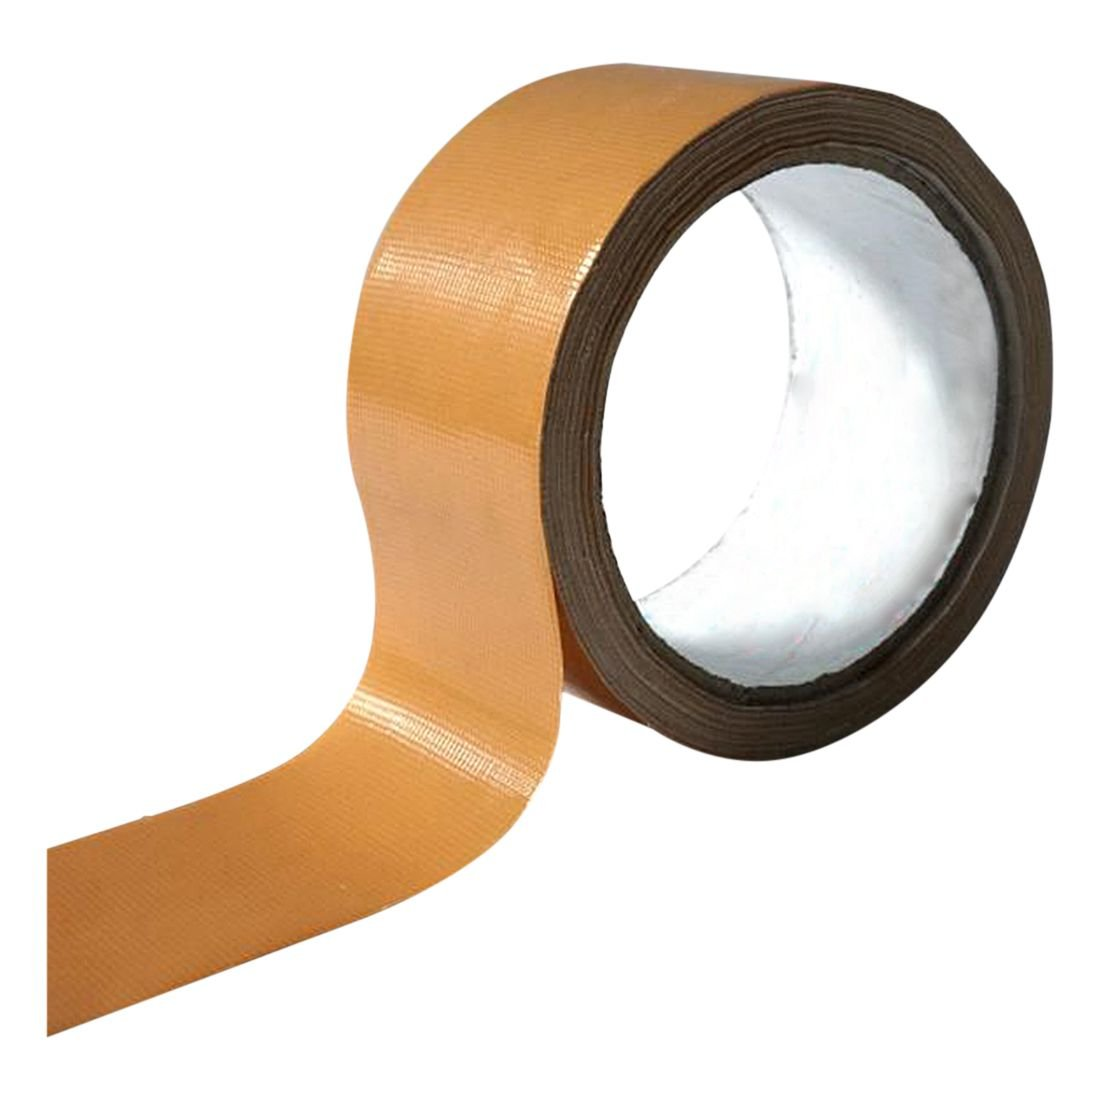 SODIAL(R) Hot melt adhesive Tape Pipeline Waterproof Tape 50mm50m, Coffee by SODIAL(R) (Image #1)